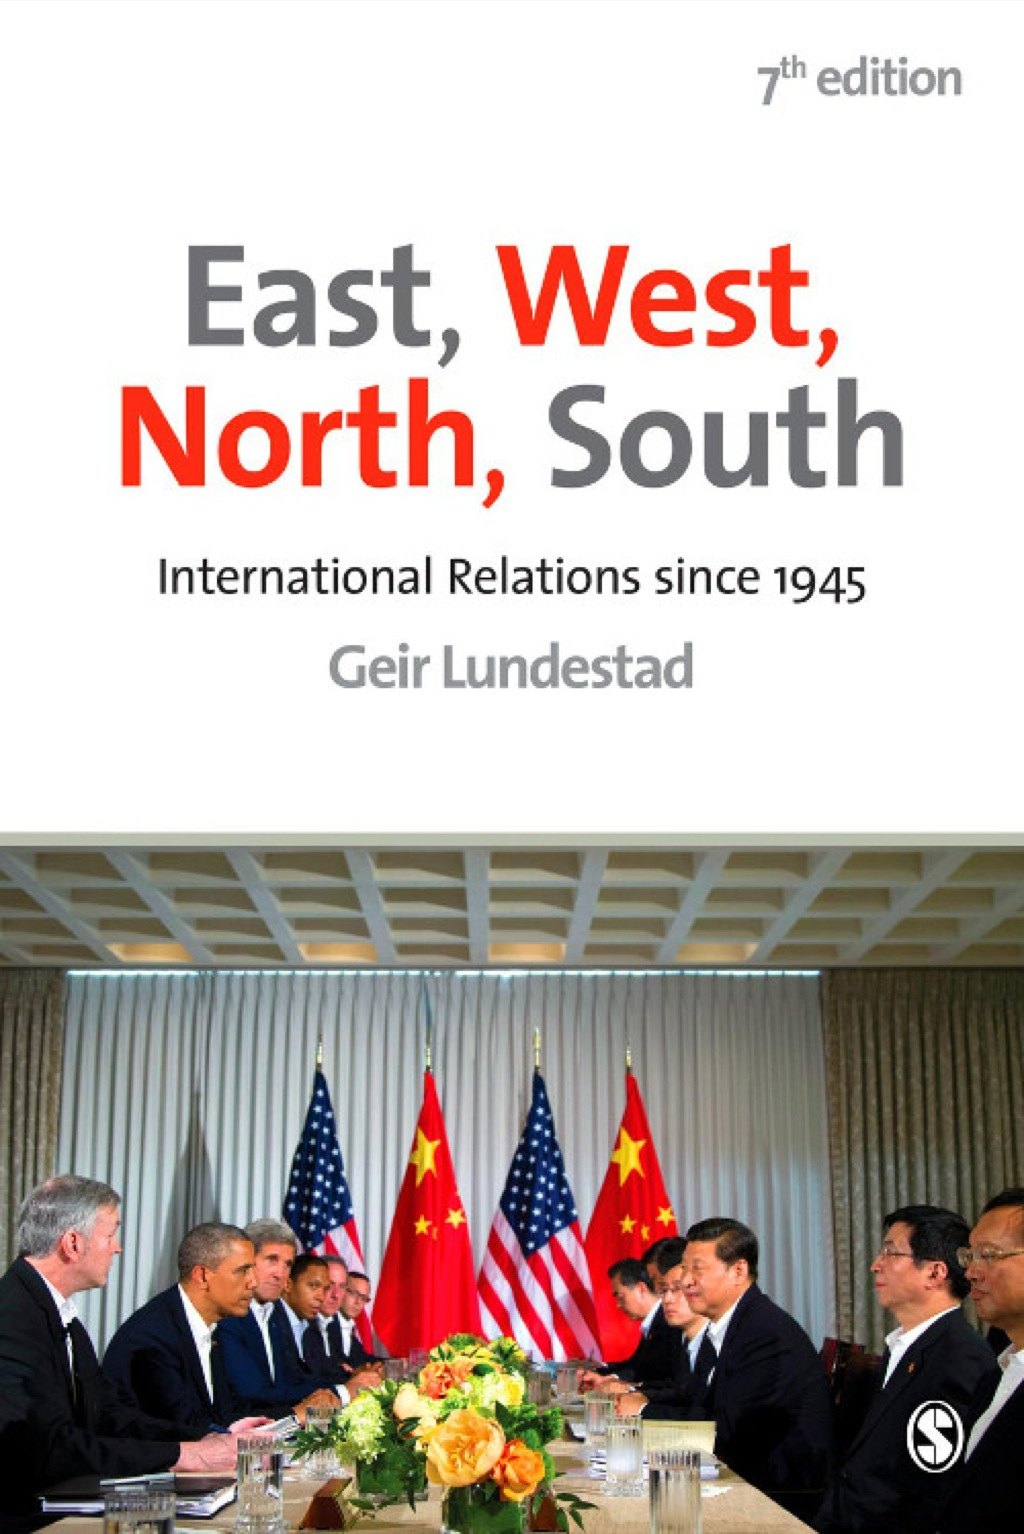 East, West, North, South (ebook) eBooks